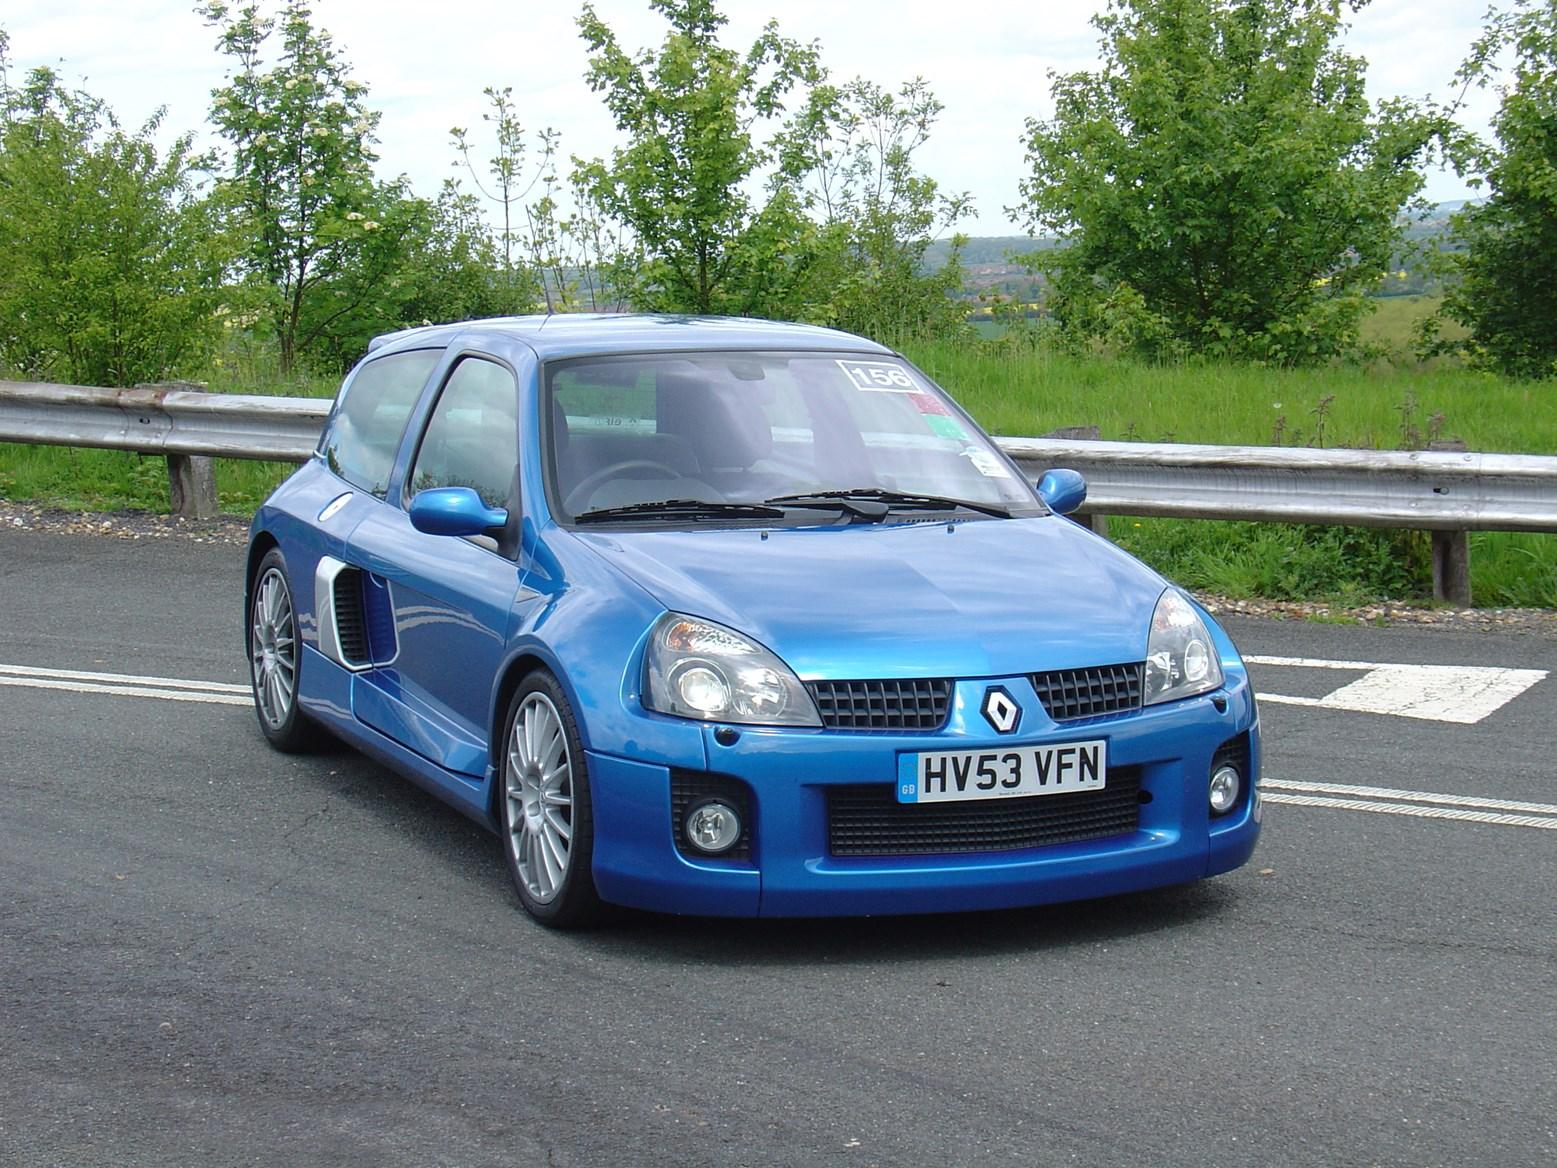 renault clio v6 review 2001 2005 parkers. Black Bedroom Furniture Sets. Home Design Ideas